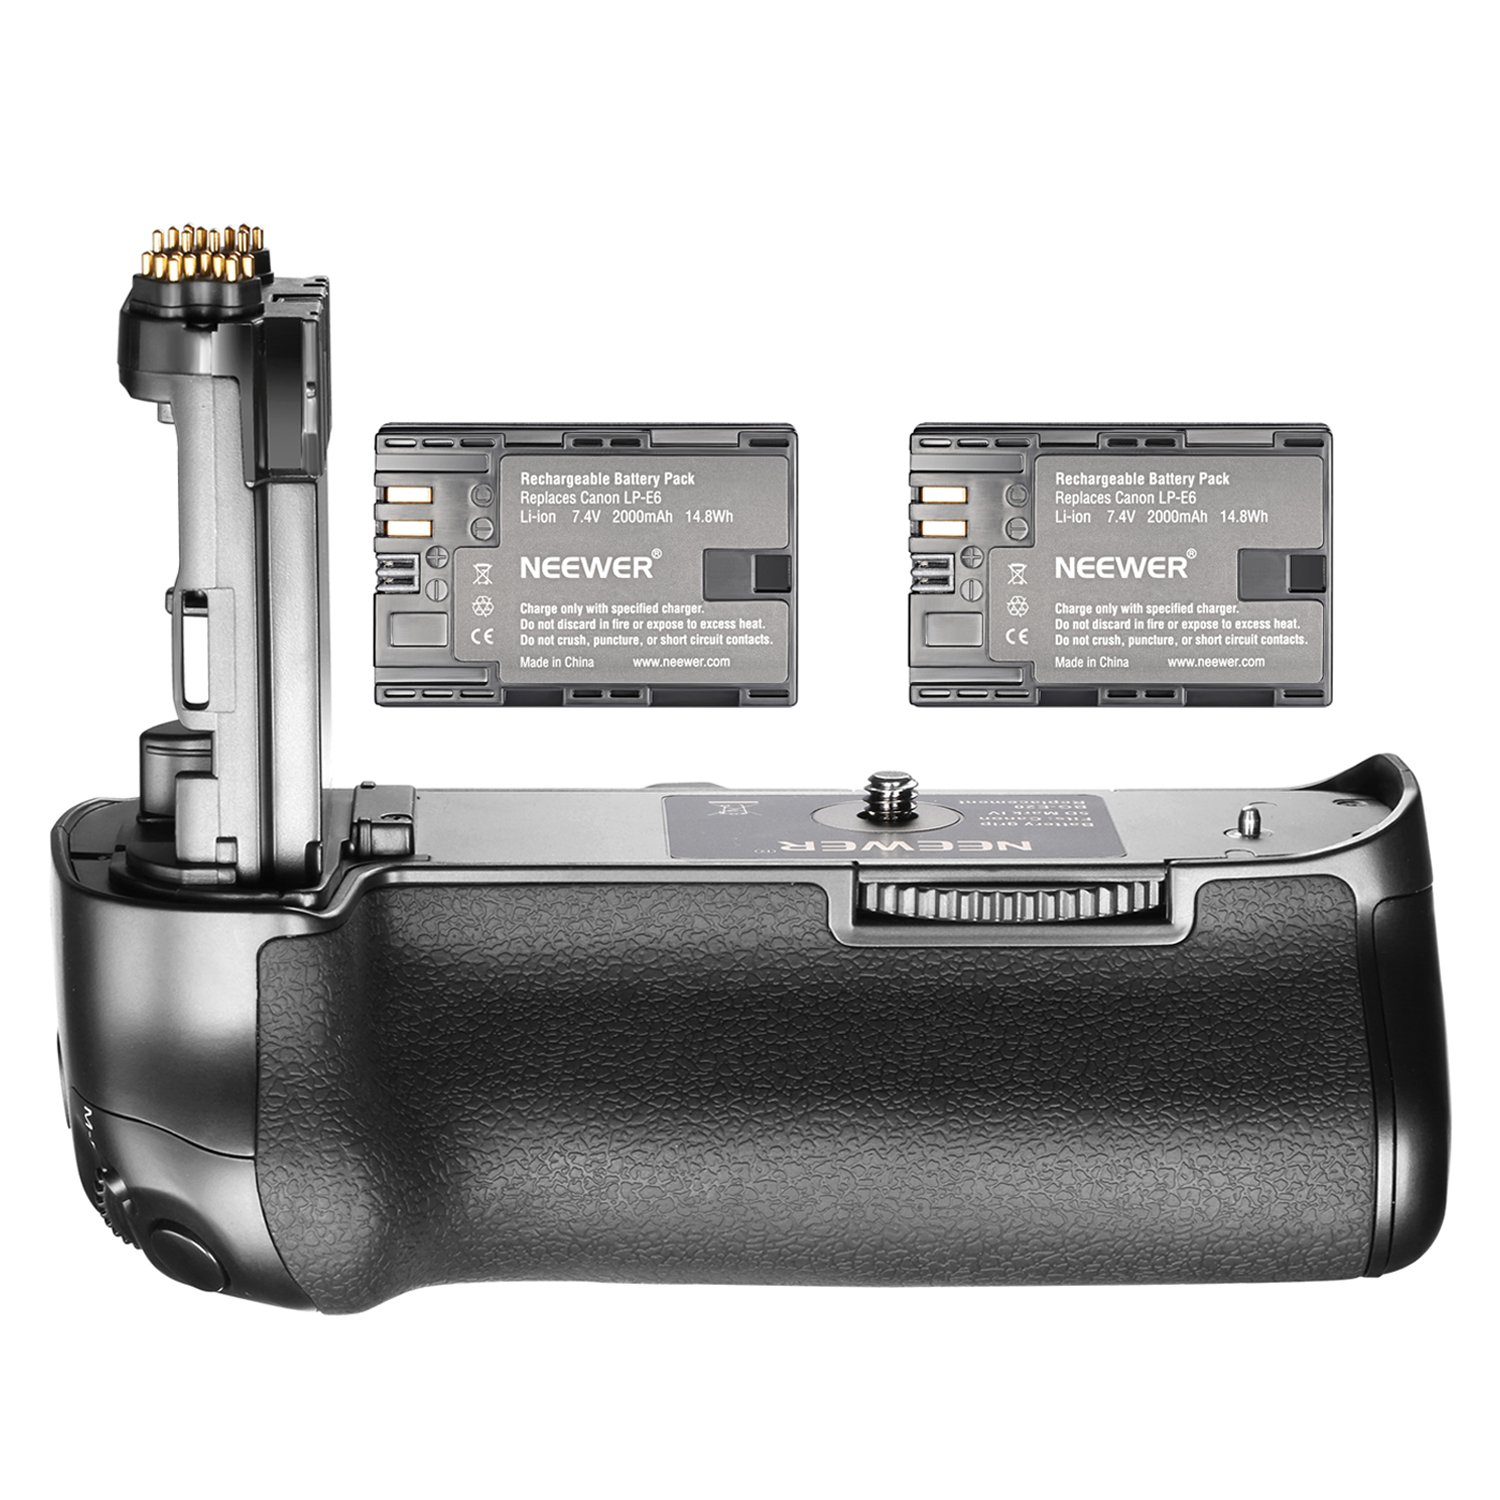 Neewer NW-5D Mark IV Replacement Canon BG-E20 Battery Grip with 2 Pack Rechargeable 7.4V 2000mAh LP-E6 Batteries, Suitable for Canon EOS 5D Mark IV DSLR Camera Body by Neewer